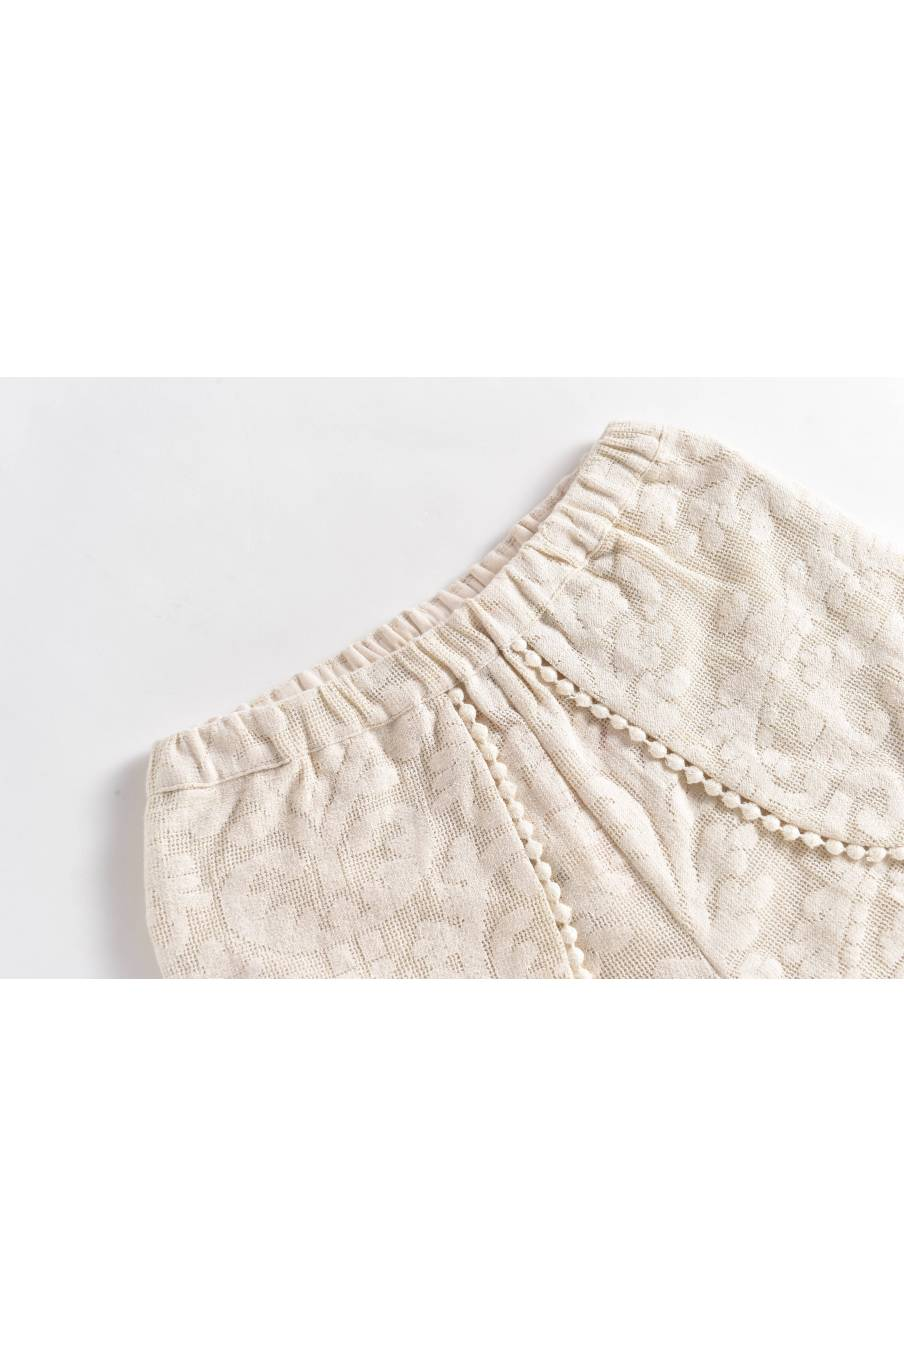 Shorts Velinda Cream Baroque Lace